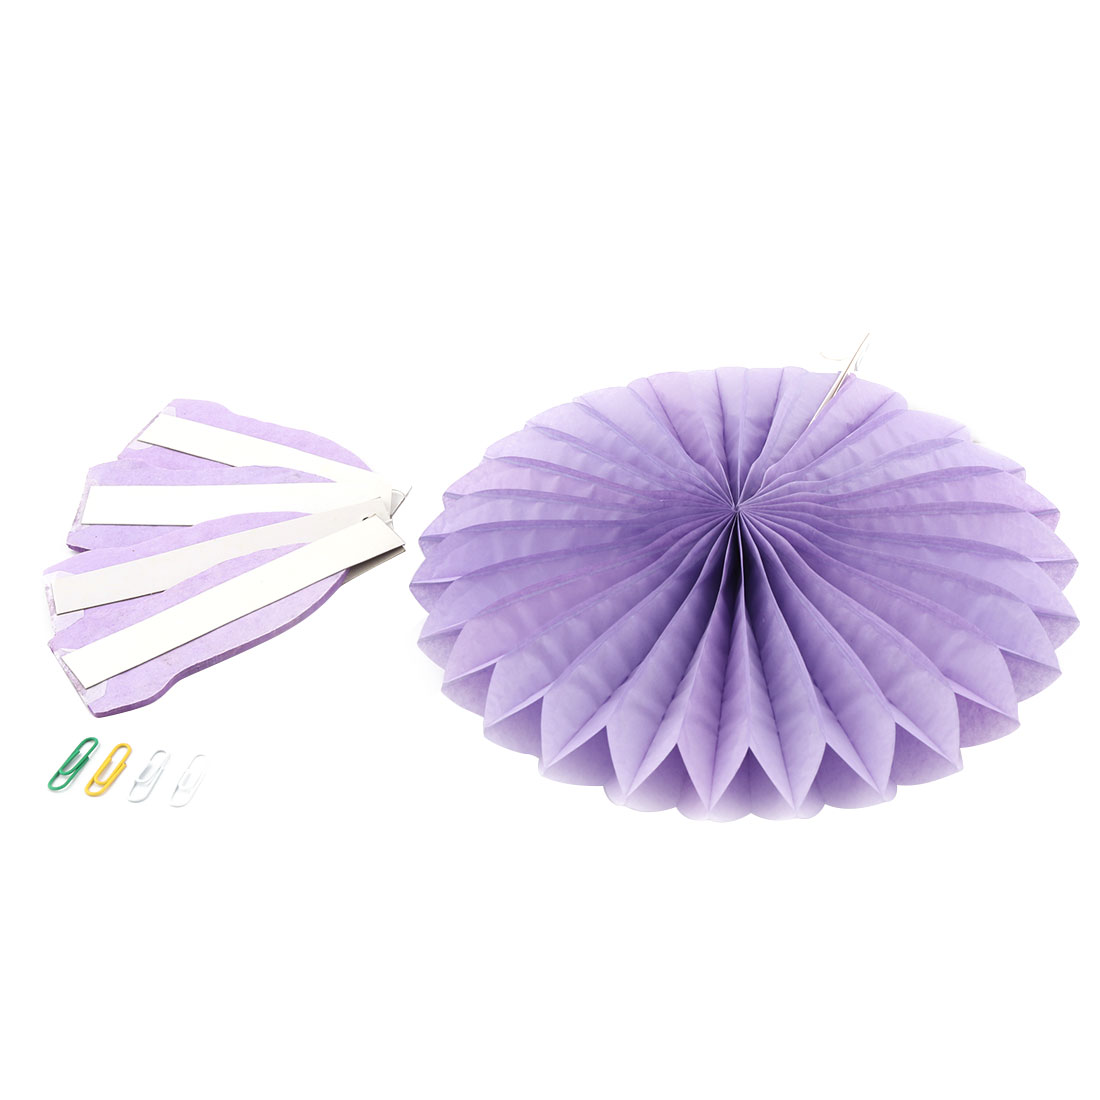 Tissue Paper Folding Fan Flower Light Purple 5pcs for Party Birthday Window Wedding Home Decor